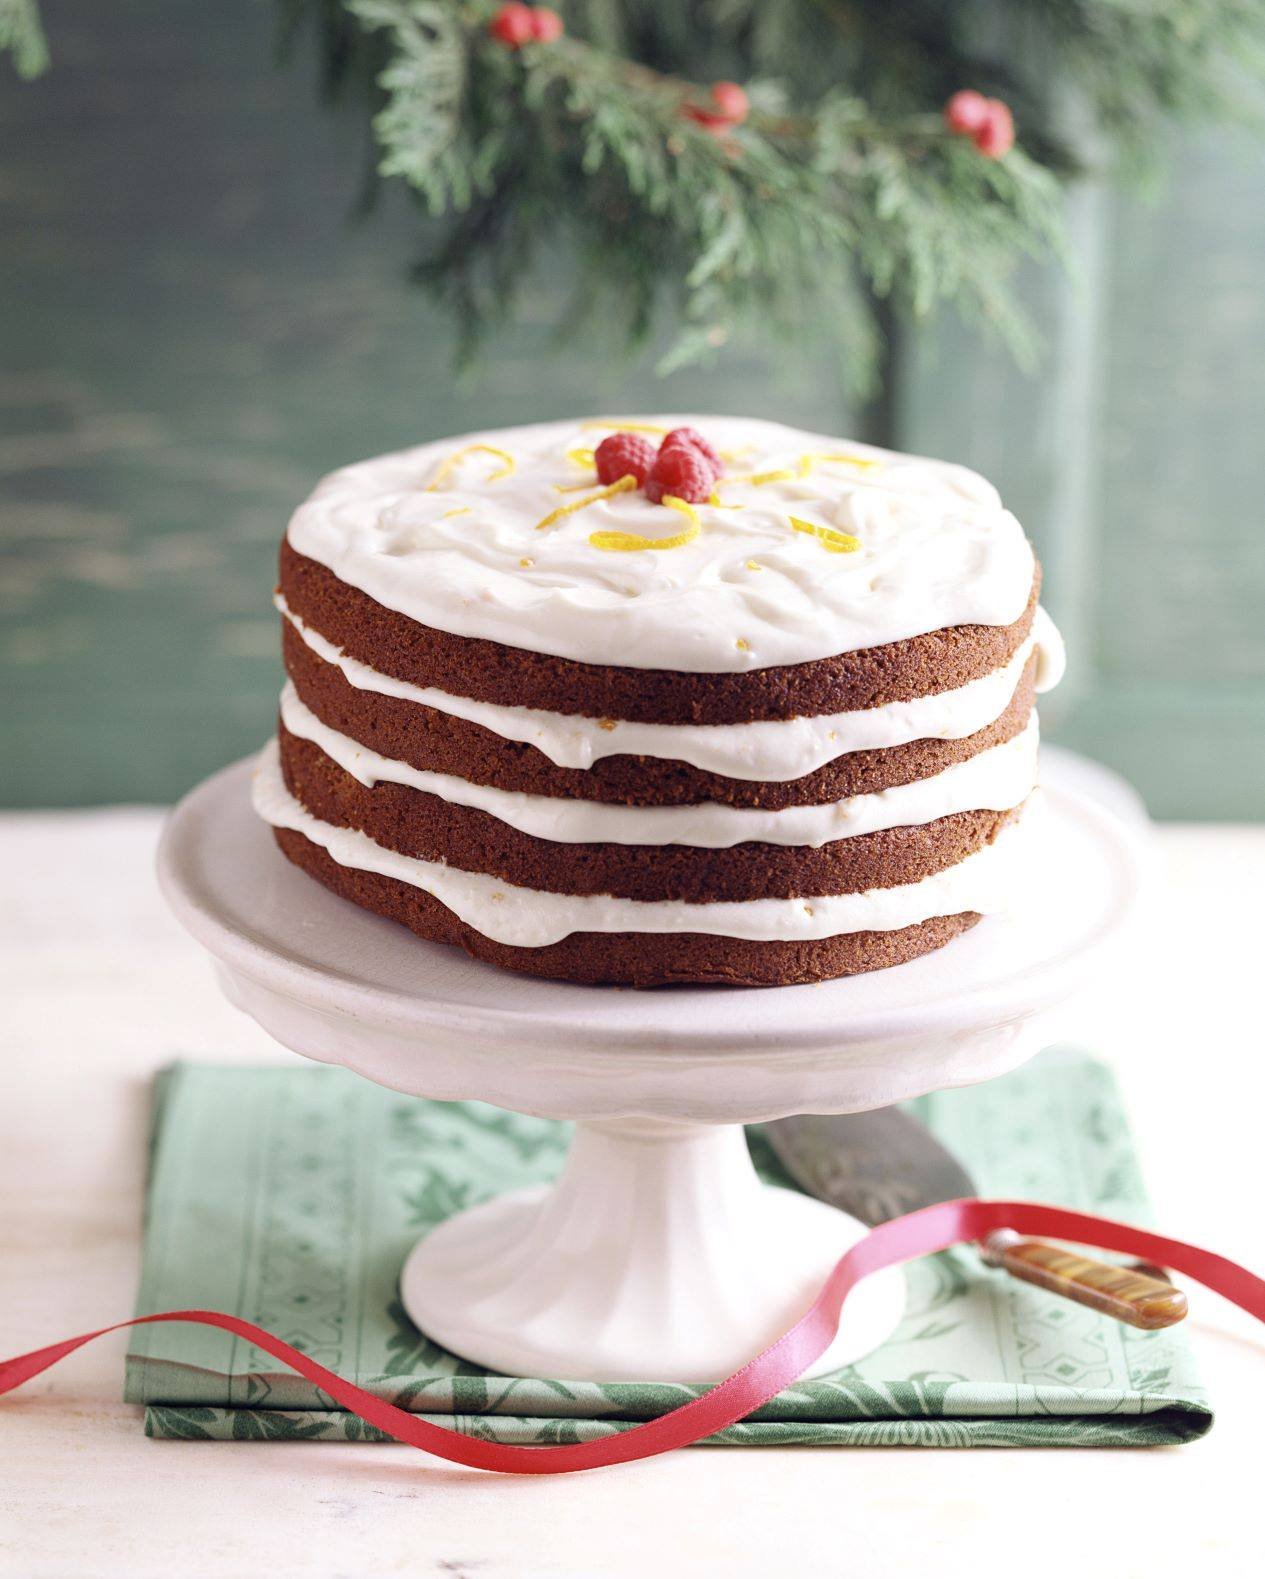 A four layer vanilla frosted Christmas cake at St. Regis in Atlanta